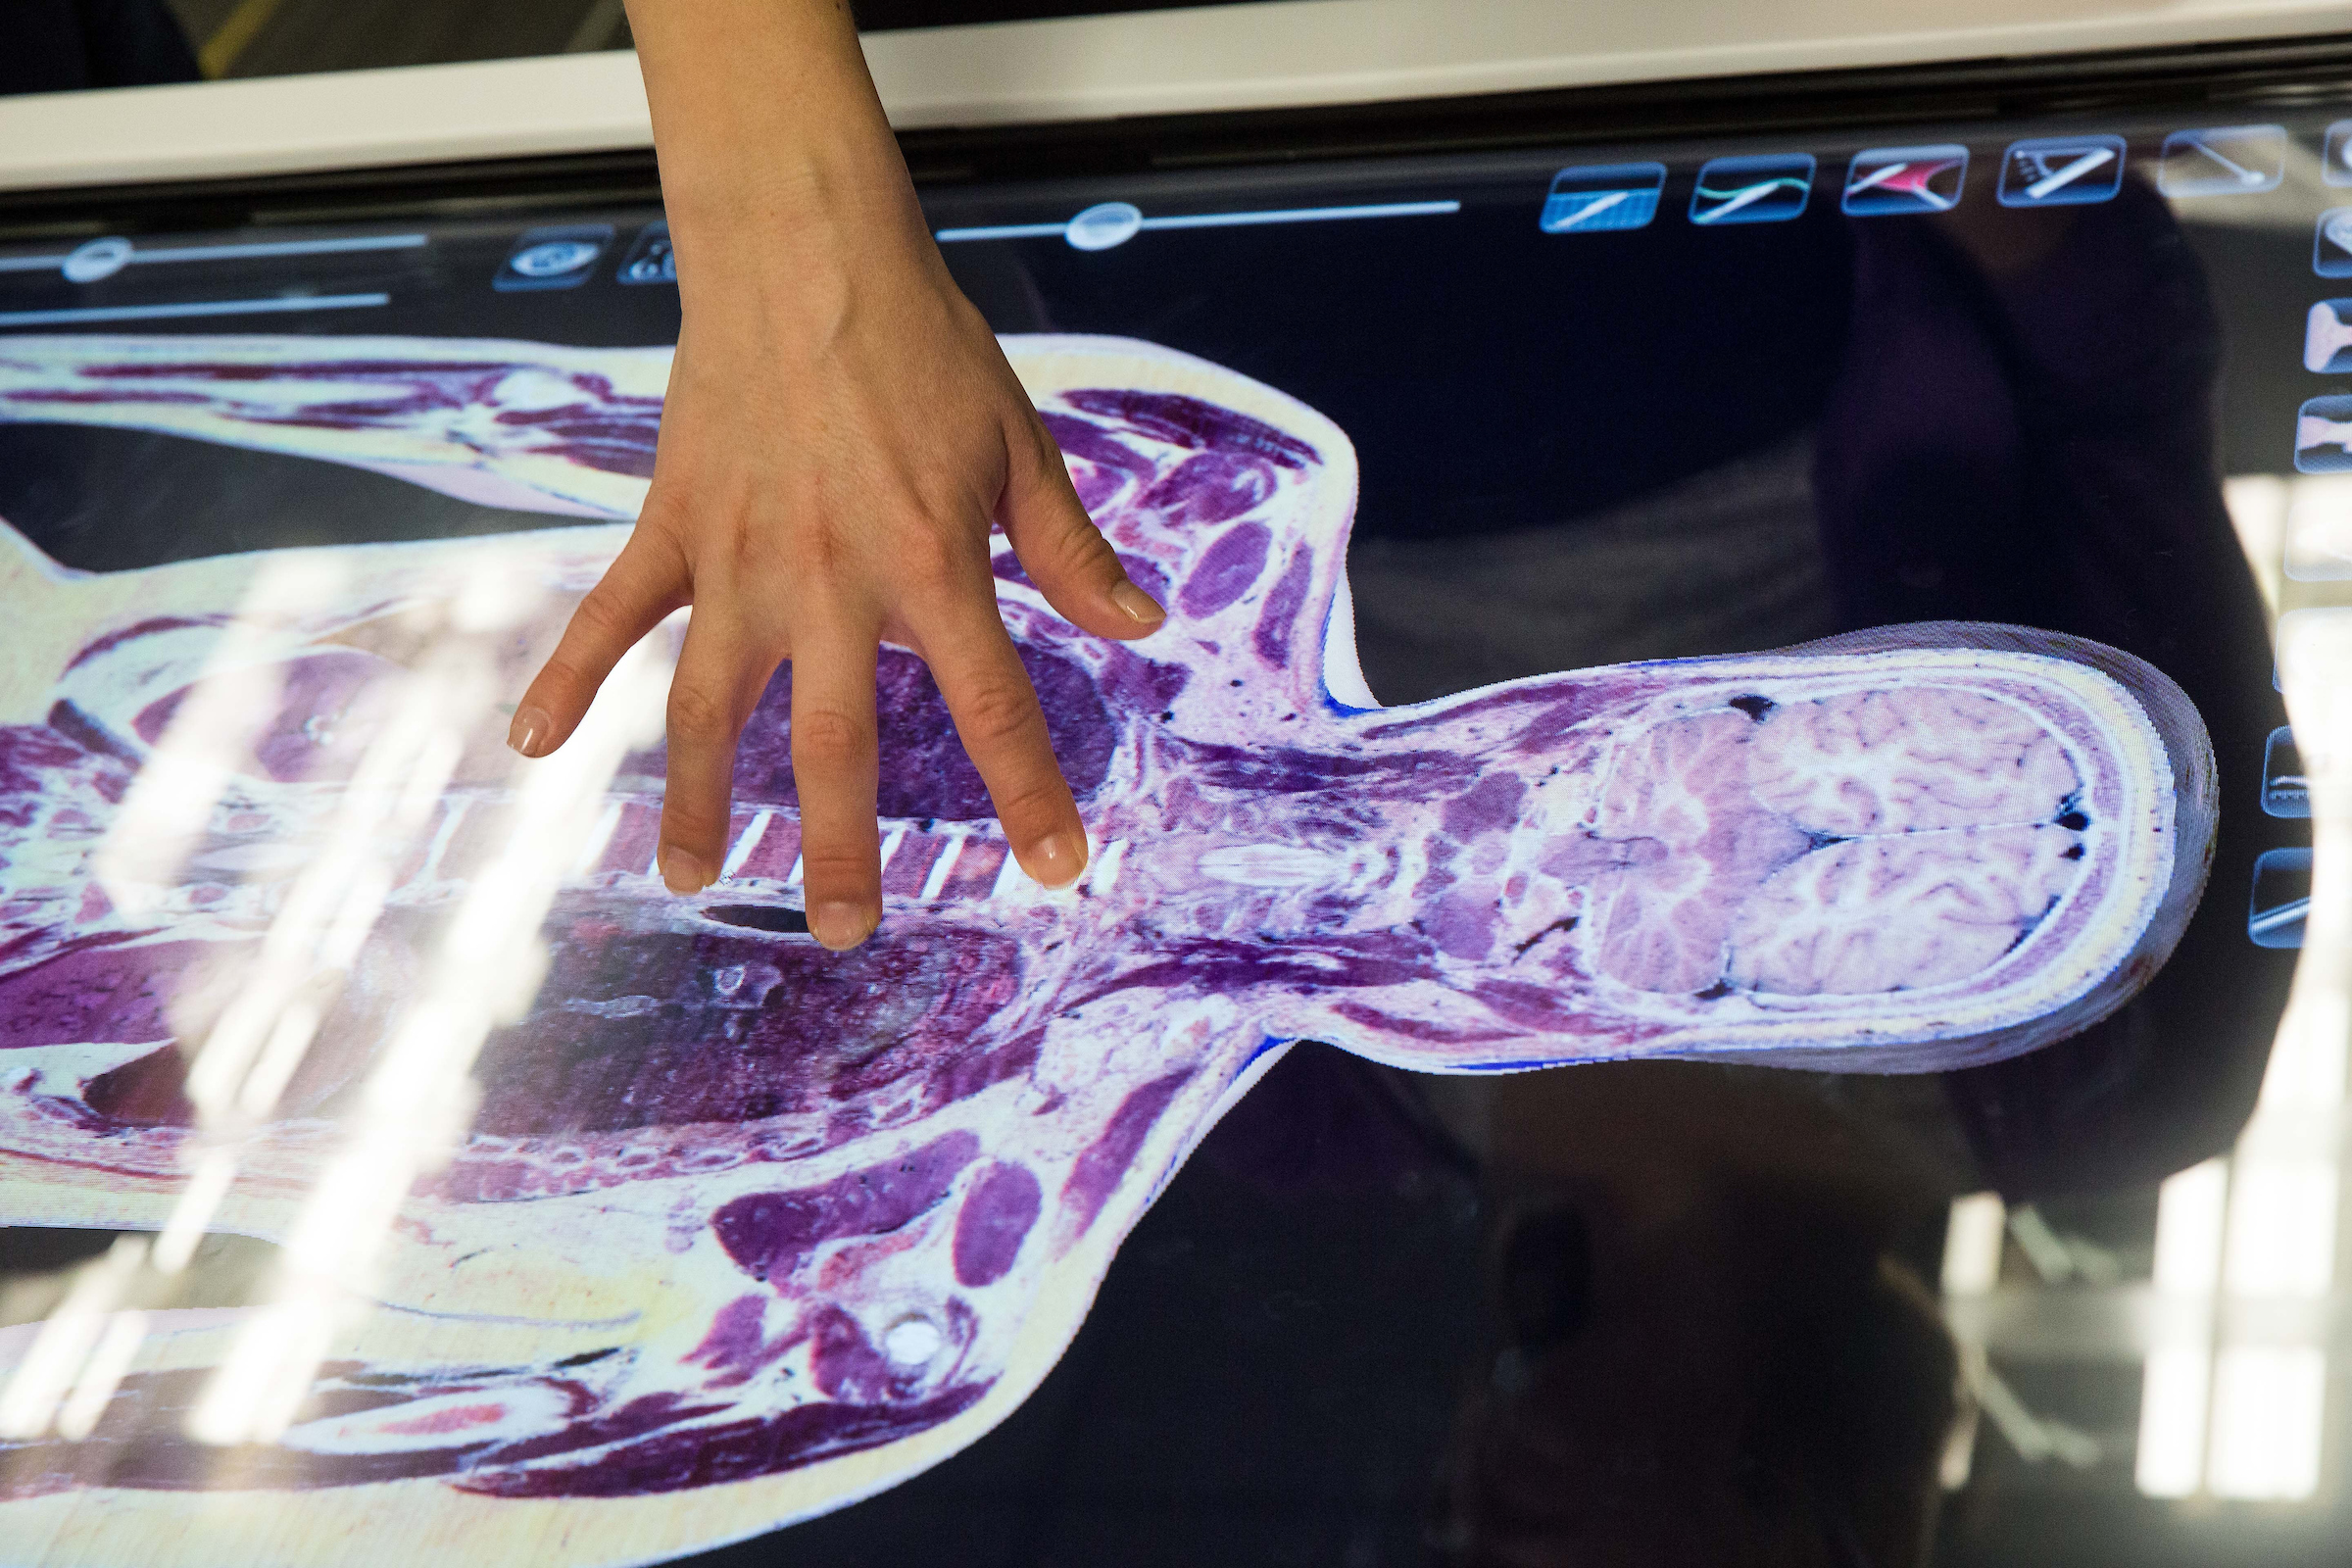 Digital Cadavers Bring Students A Deeper Understanding Of Anatomy